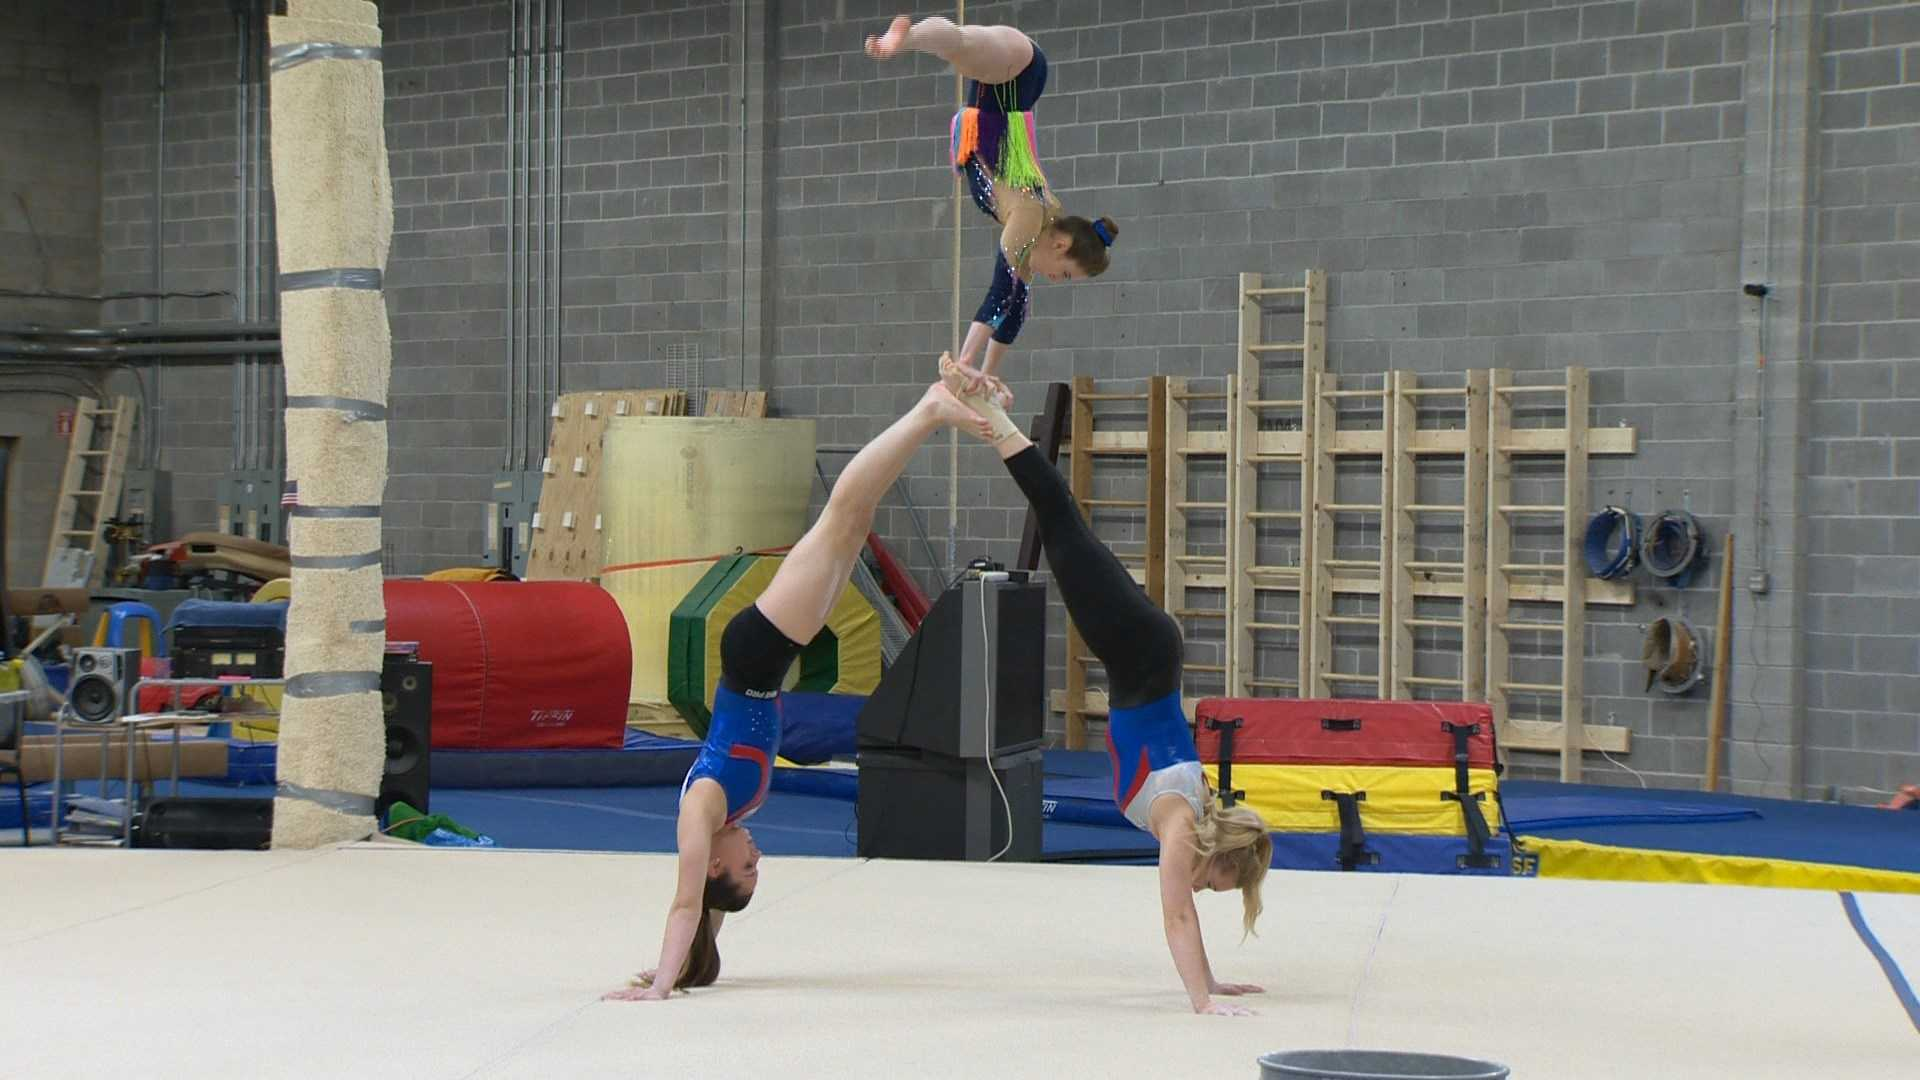 Gymnasts at Emilia's Acrobatics in Columbia practice in preparation for competing in the World Acrobatic Gymnastics Championships in China.